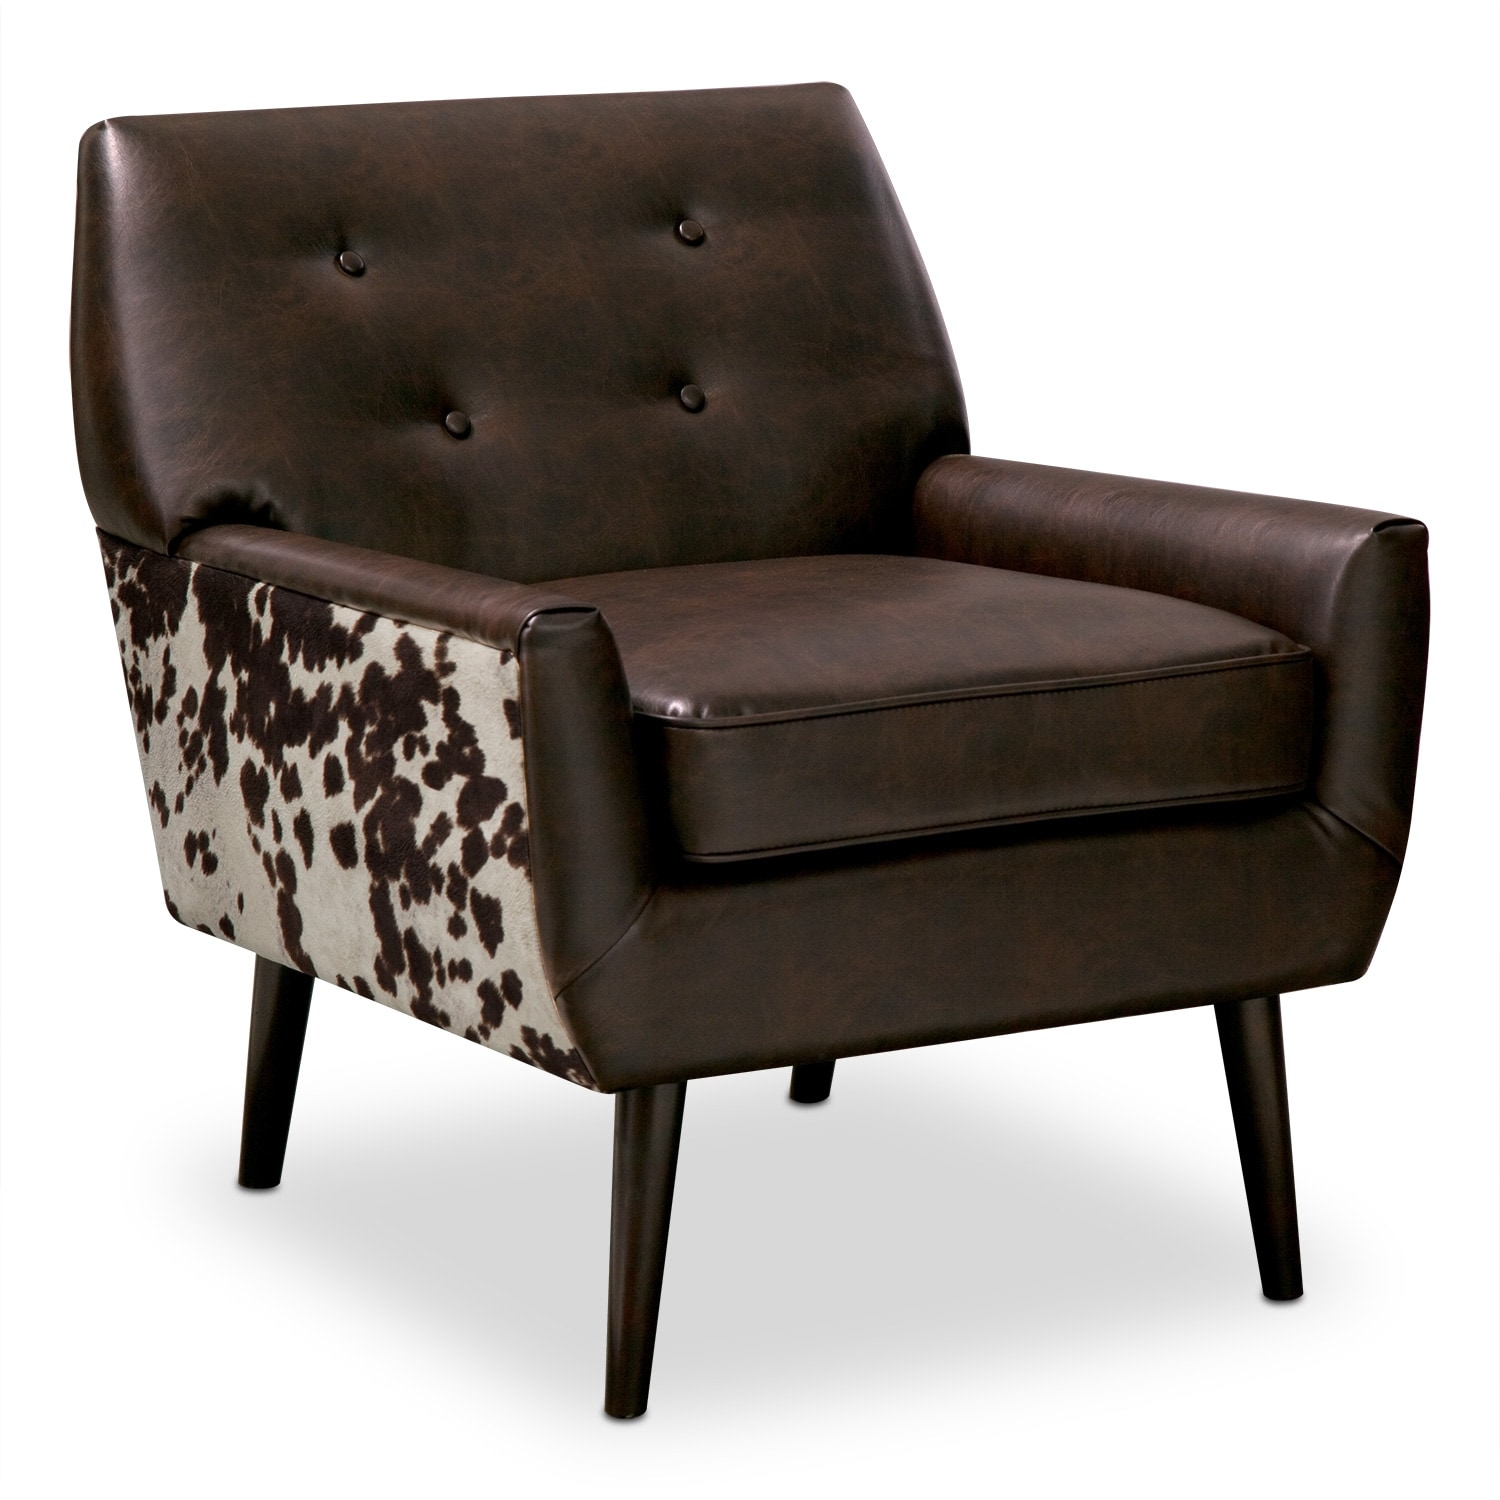 Madeline Ii Leather Accent Chair Value City Furniture